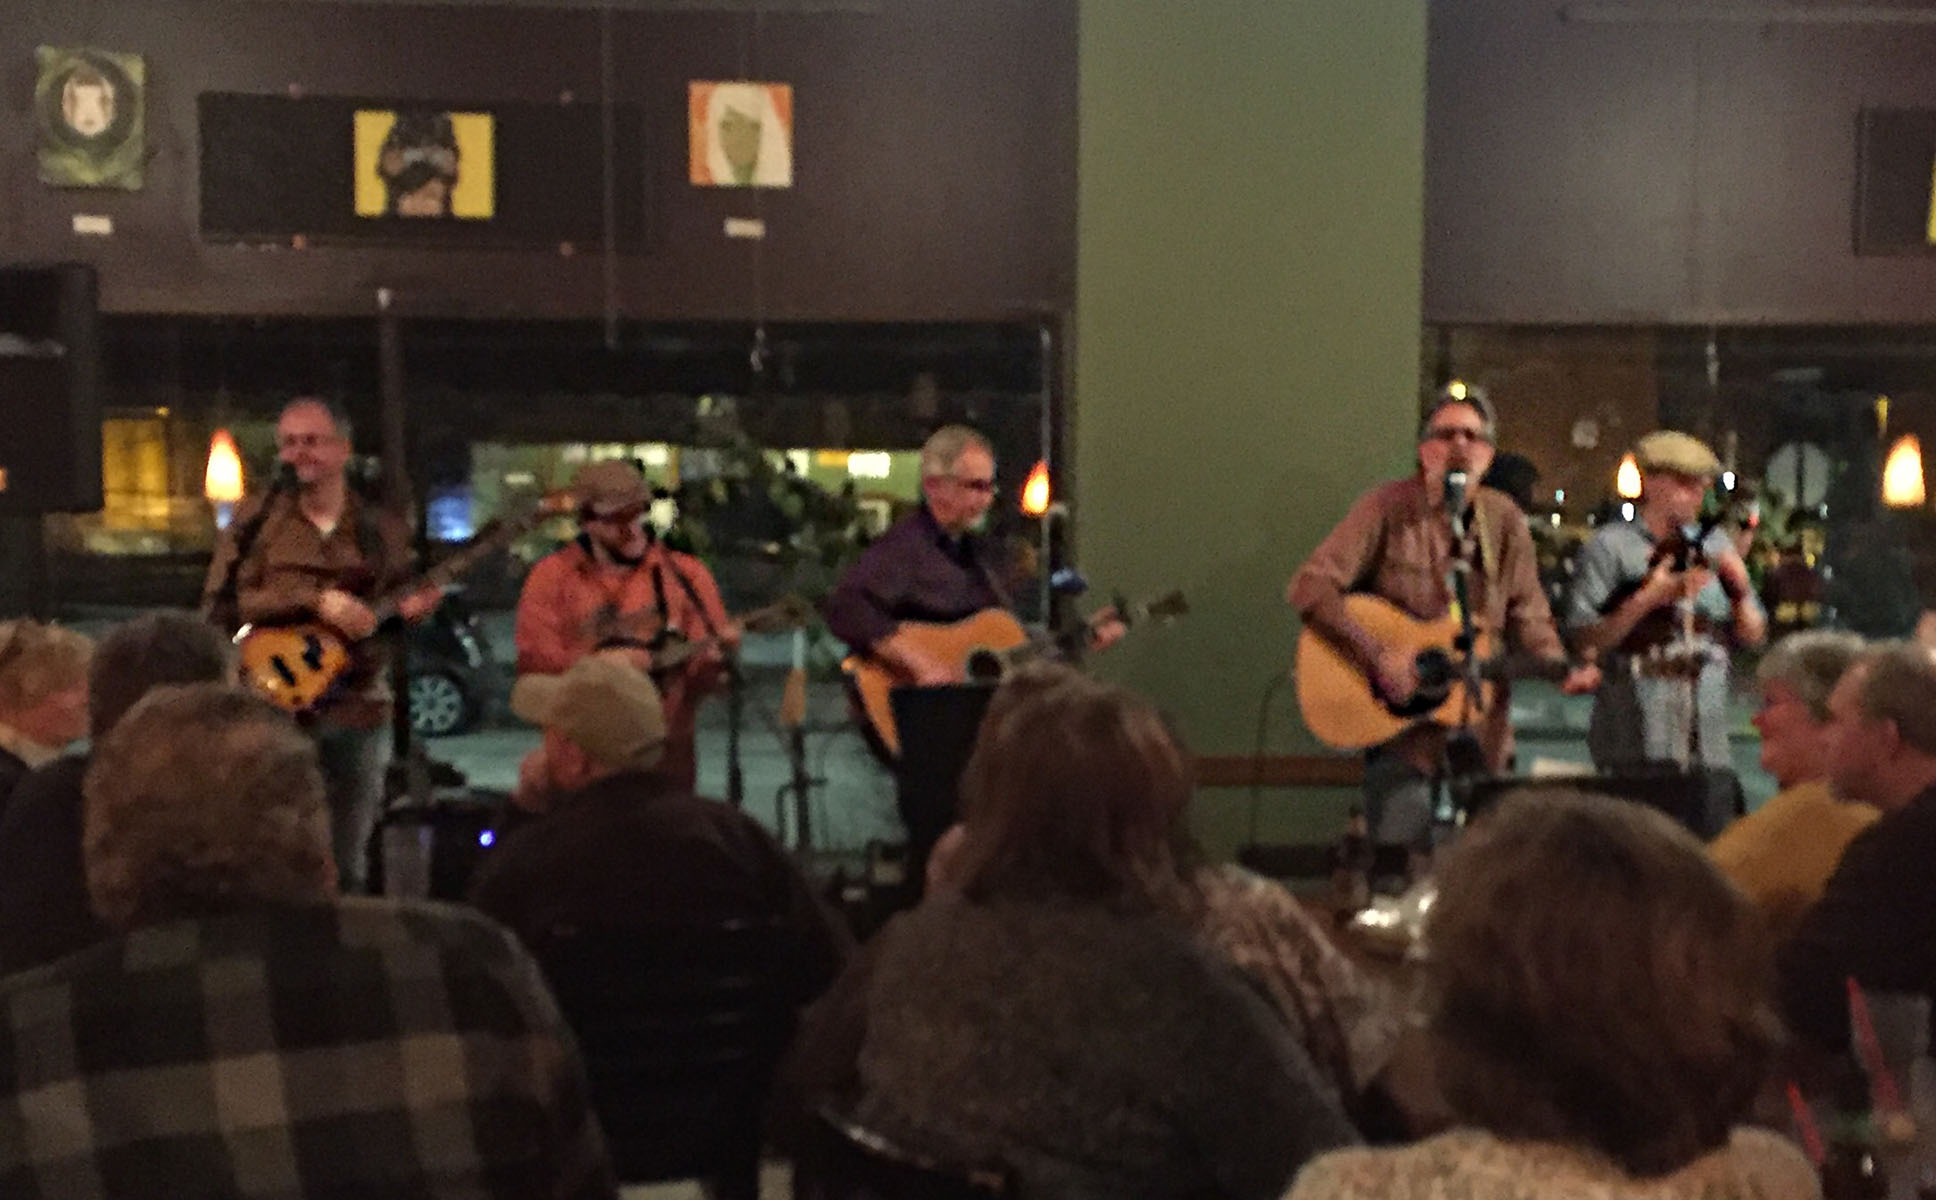 Eggplant Heroes, a local Americana group, performed to a packed house 7-10 p.m. Saturday night at Acoustic Cafe.